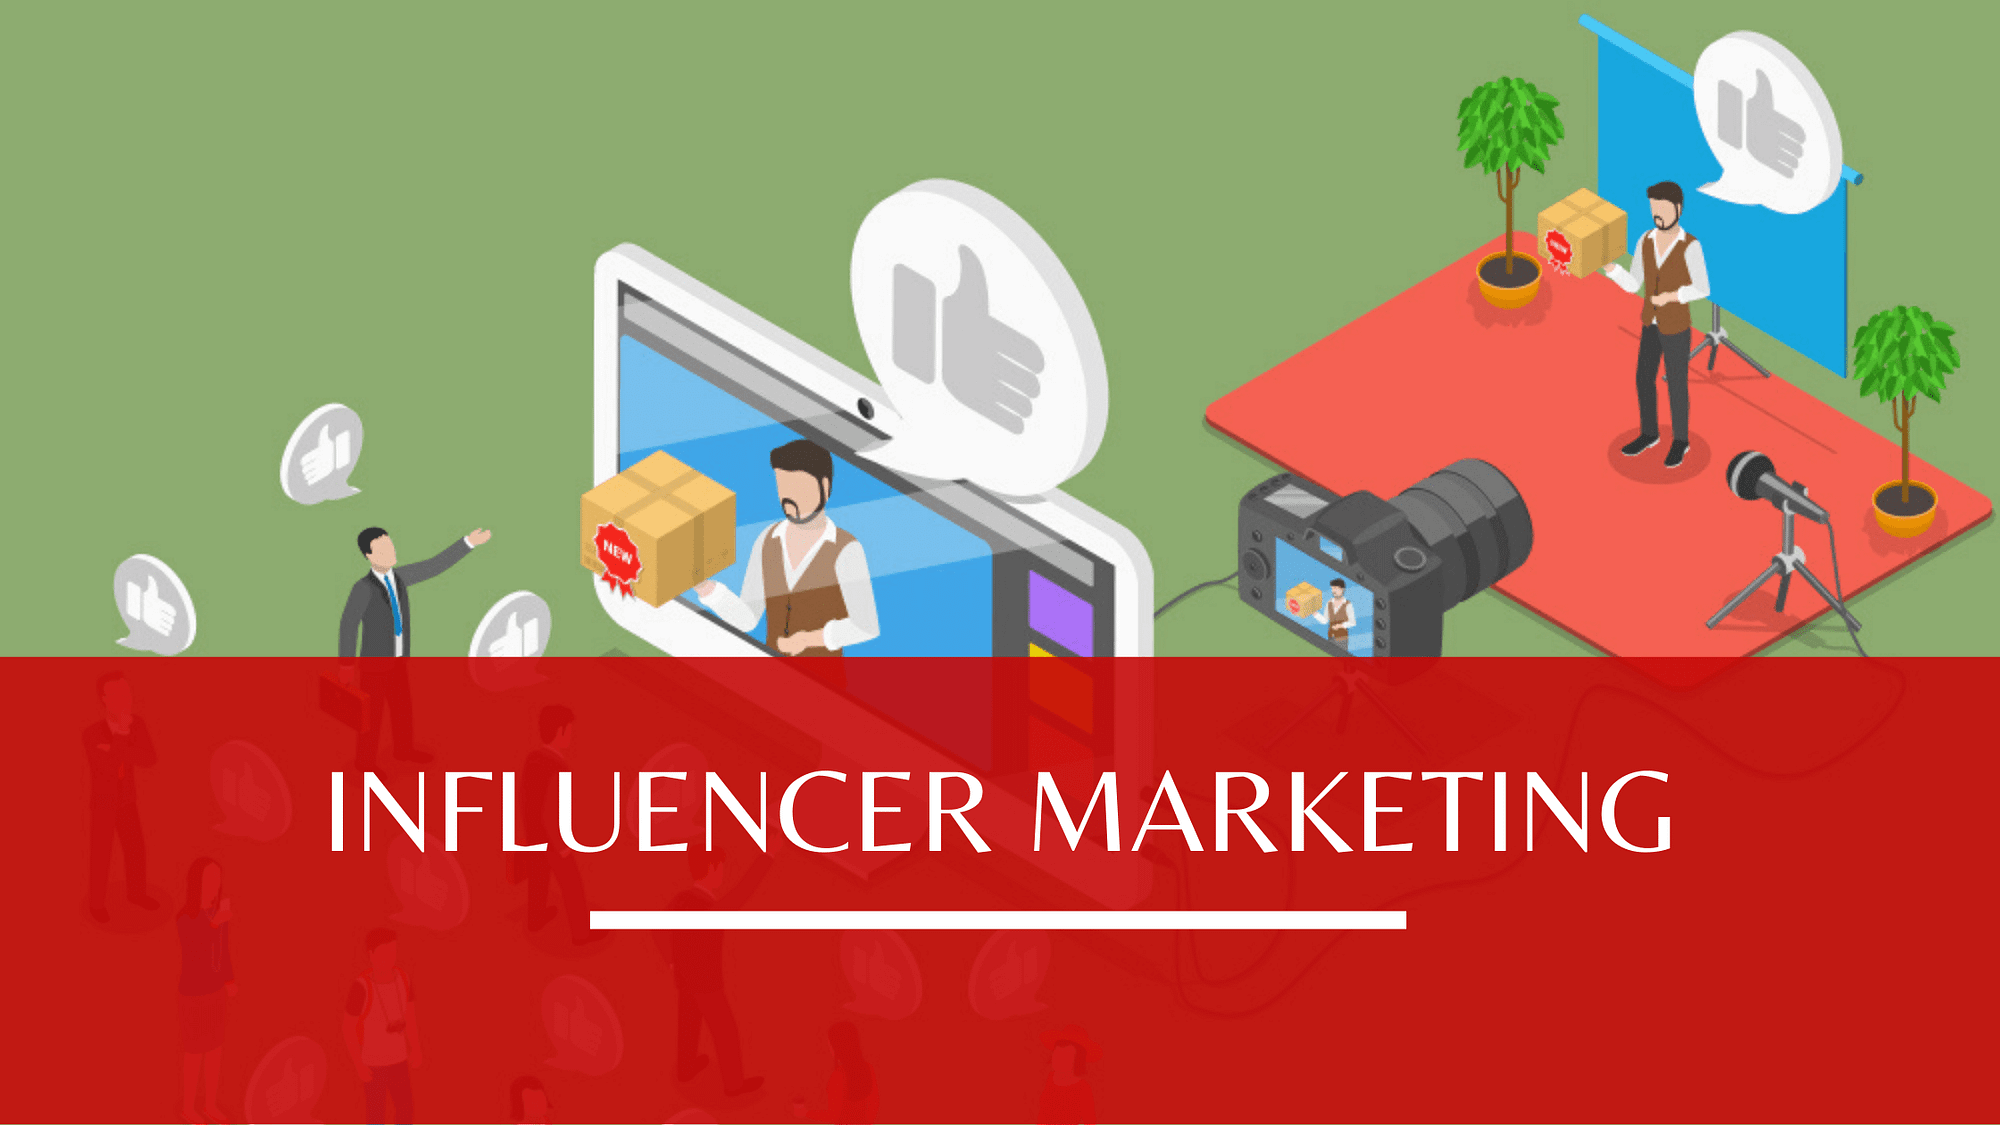 What is influencer marketing